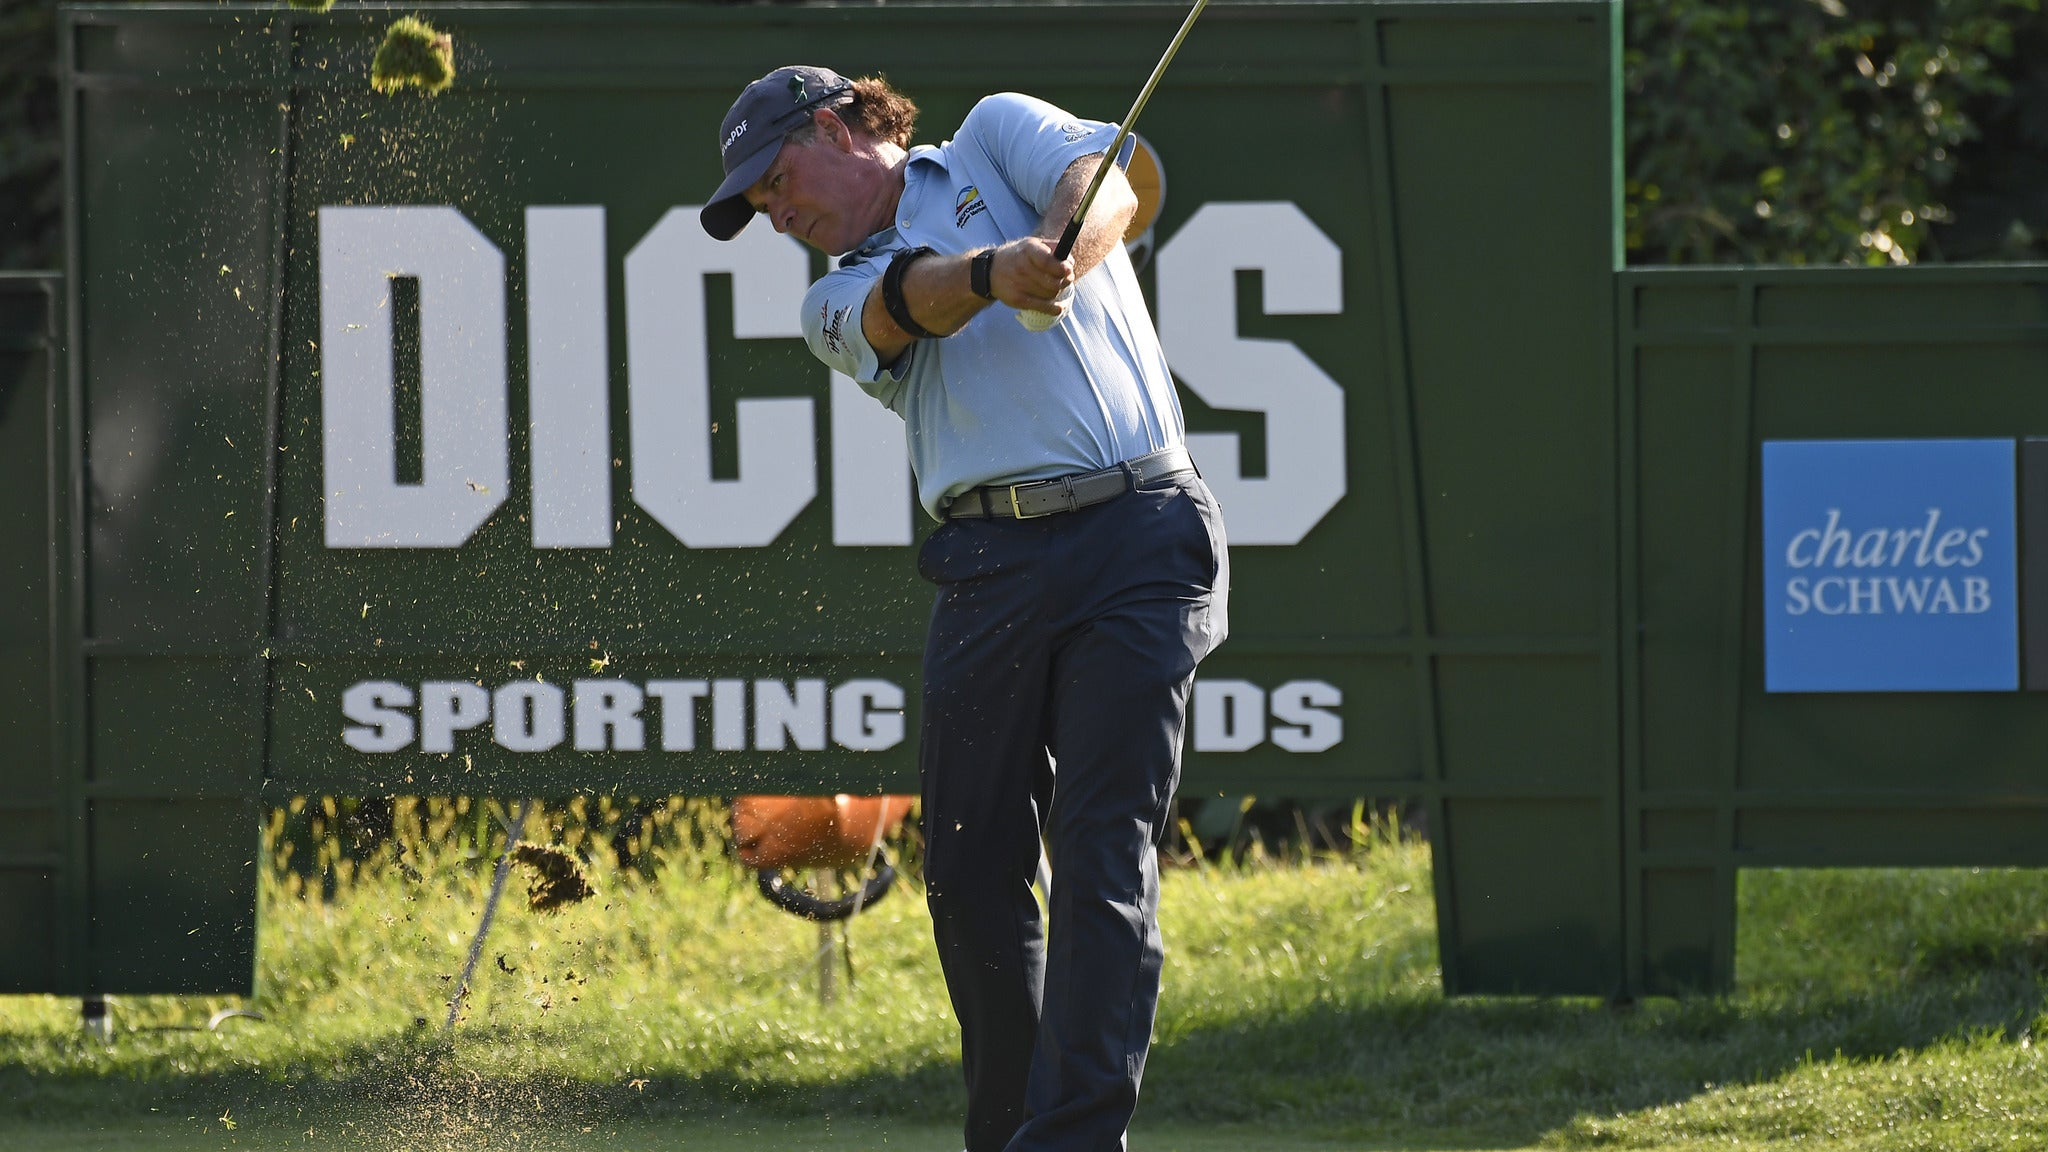 2019 DICK'S Sporting Goods Open Practice Round: Tuesday, August 13th